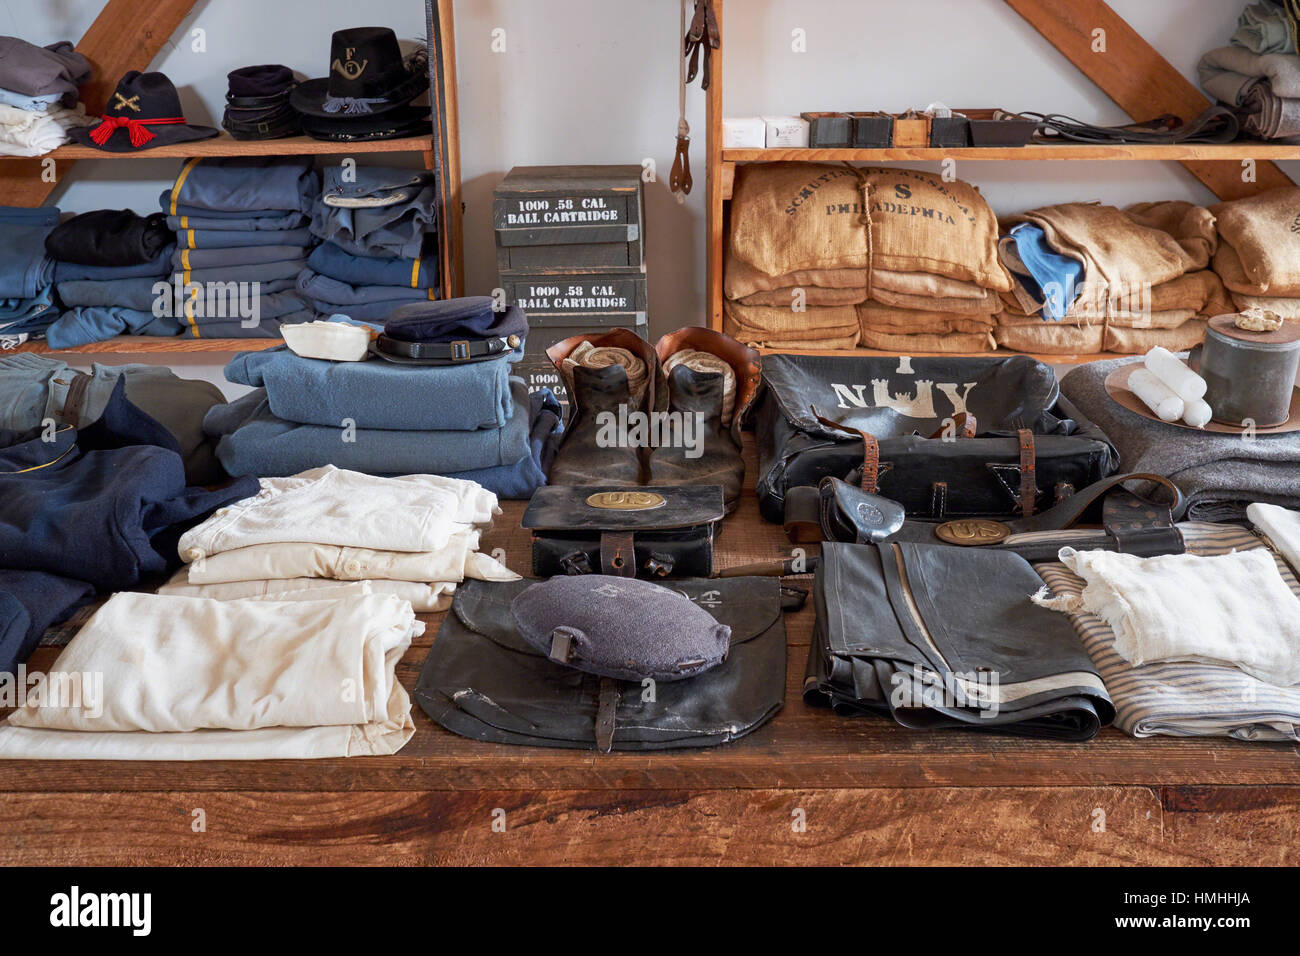 Exhibit of Civil War Era Military Supplies of the Union Army, Ft Clinch, Florida - Stock Image